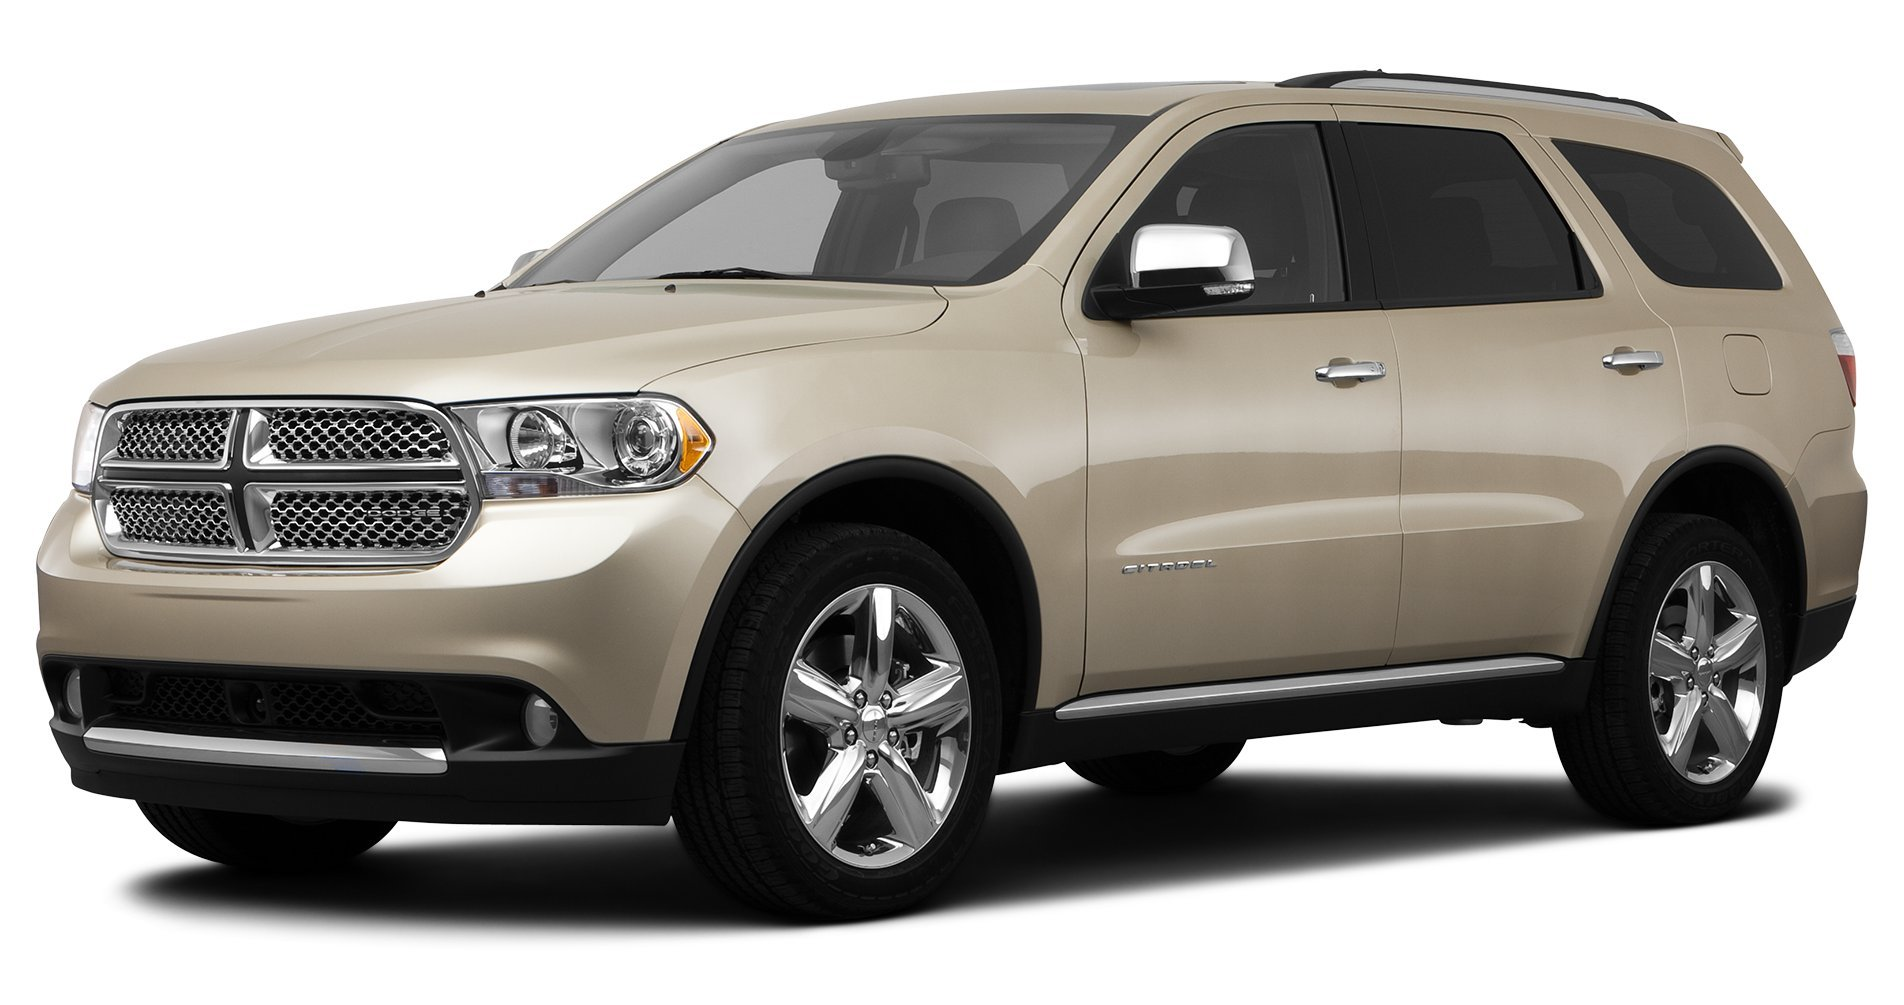 2011 dodge durango reviews images and specs vehicles. Black Bedroom Furniture Sets. Home Design Ideas